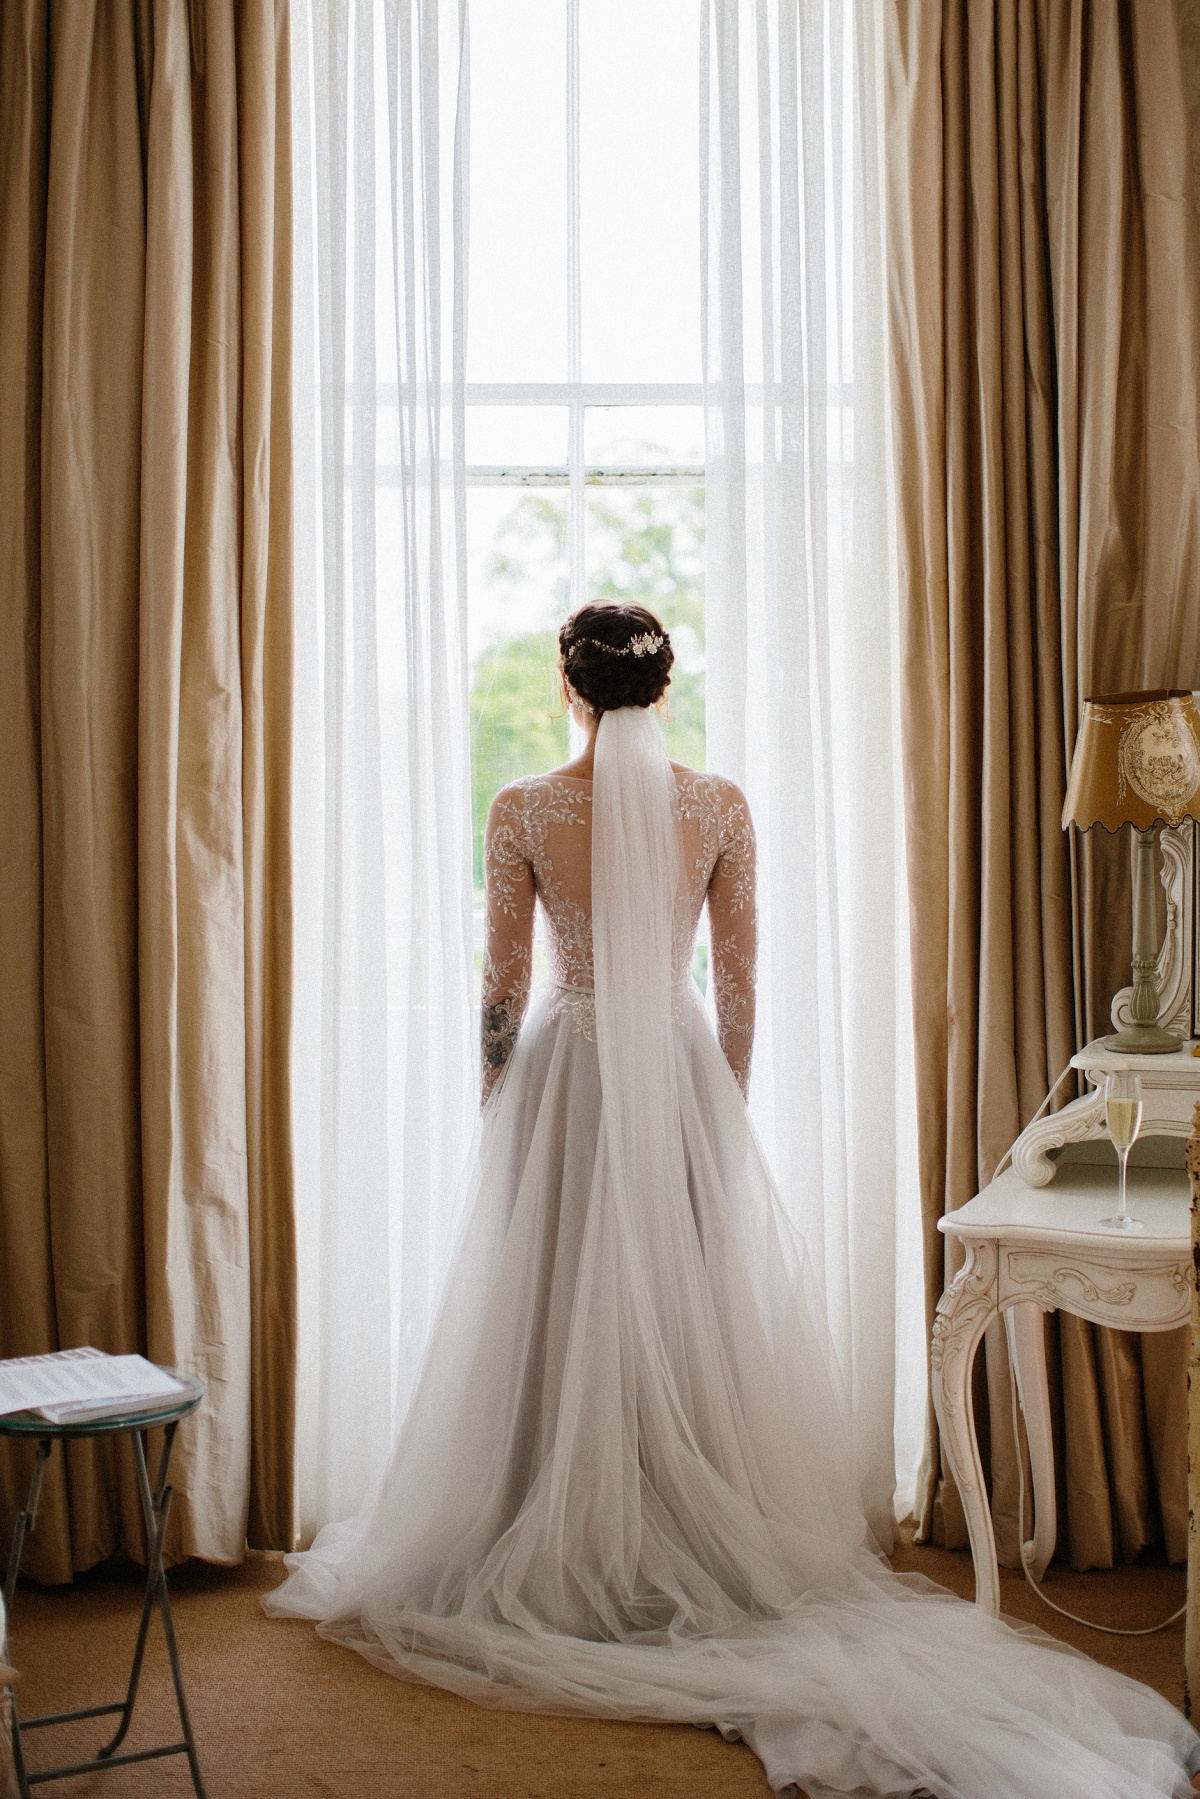 An Elegant Wedding at Lartington Hall (c) Melissa Beattie (12)